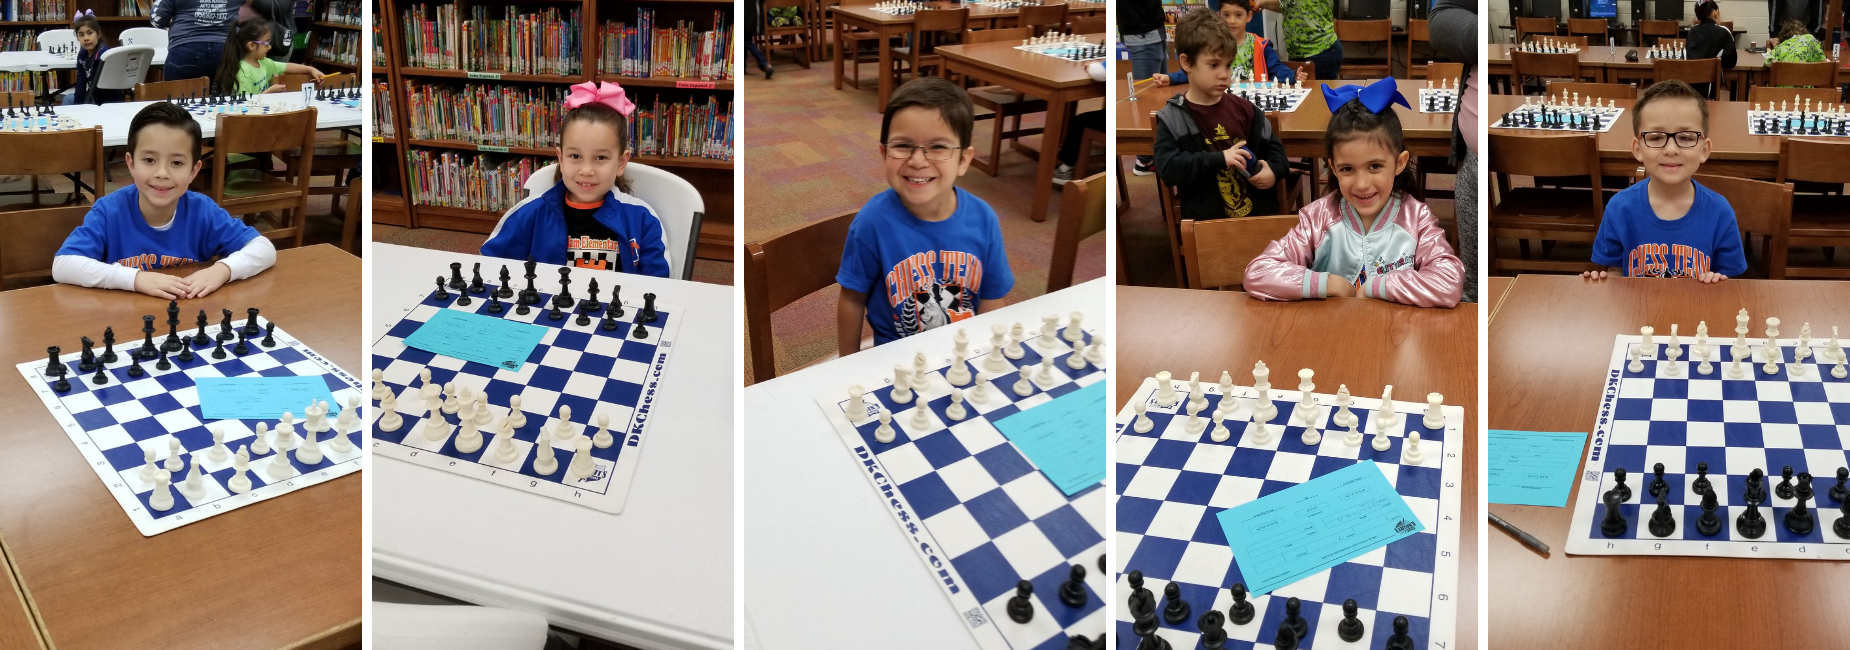 Milam Kinder and 1st grade chess players at tournament